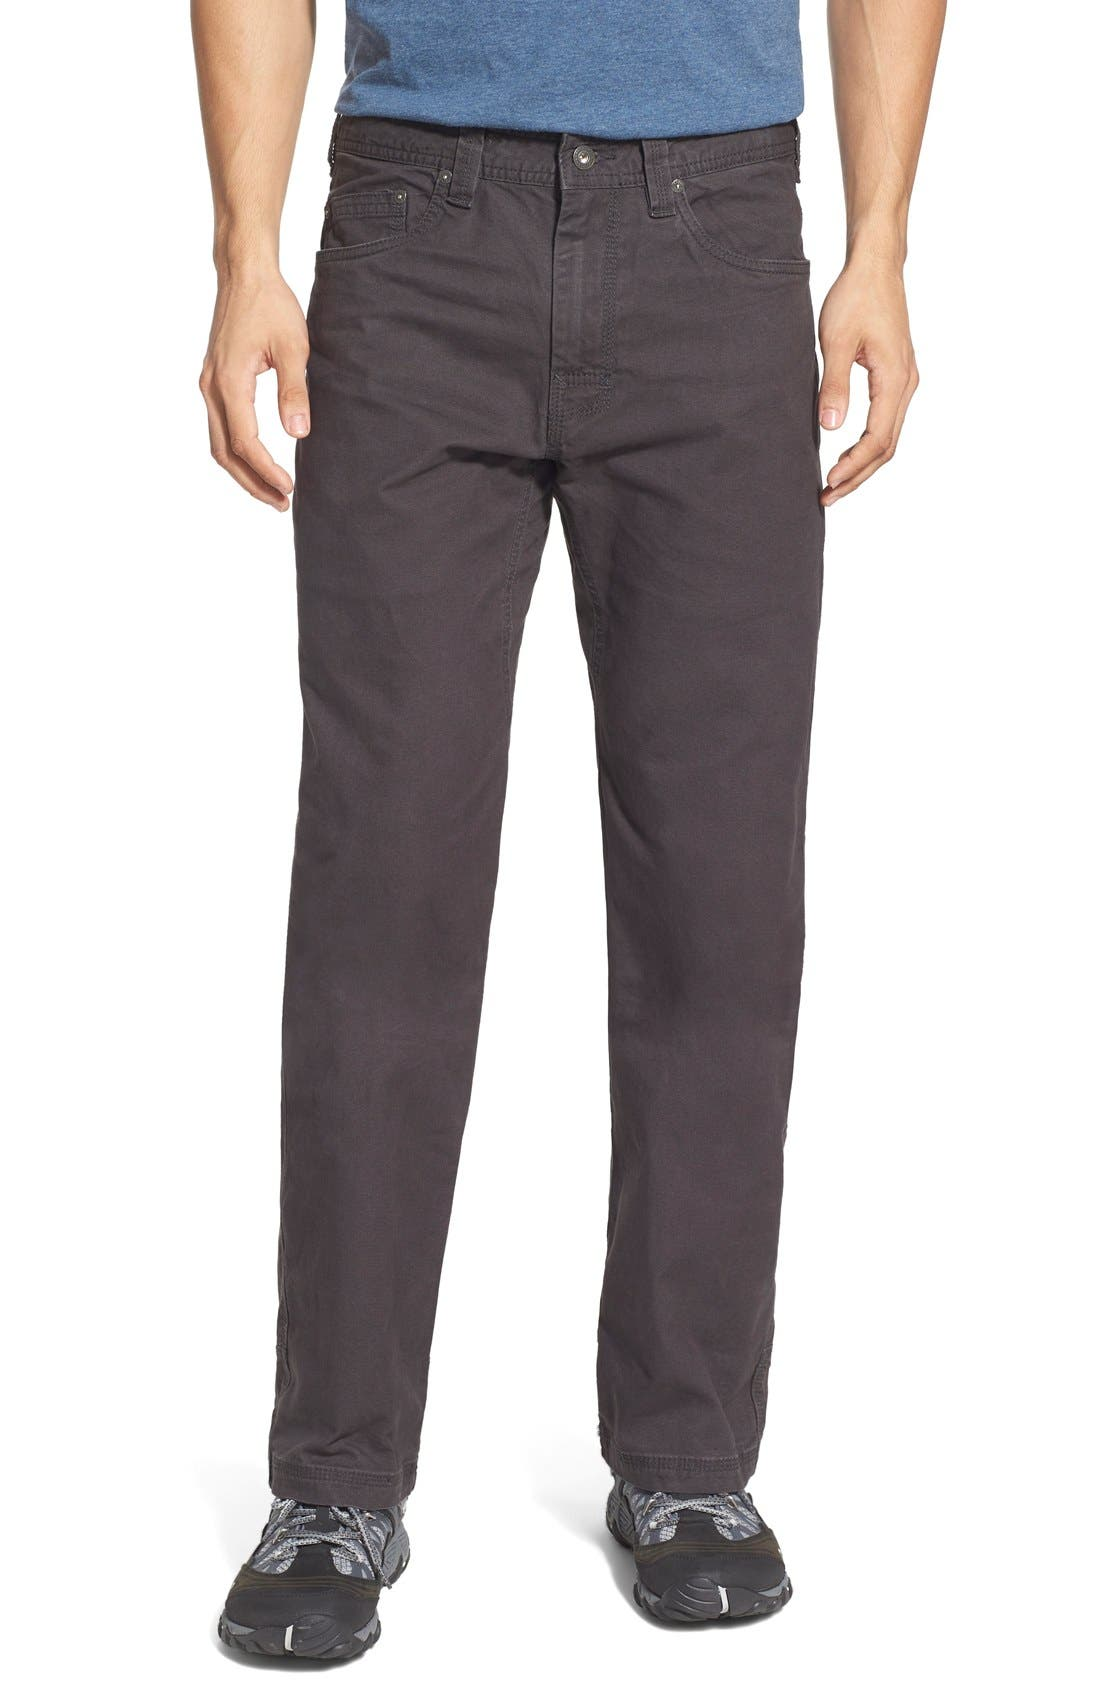 Bronson Pants,                         Main,                         color, 010